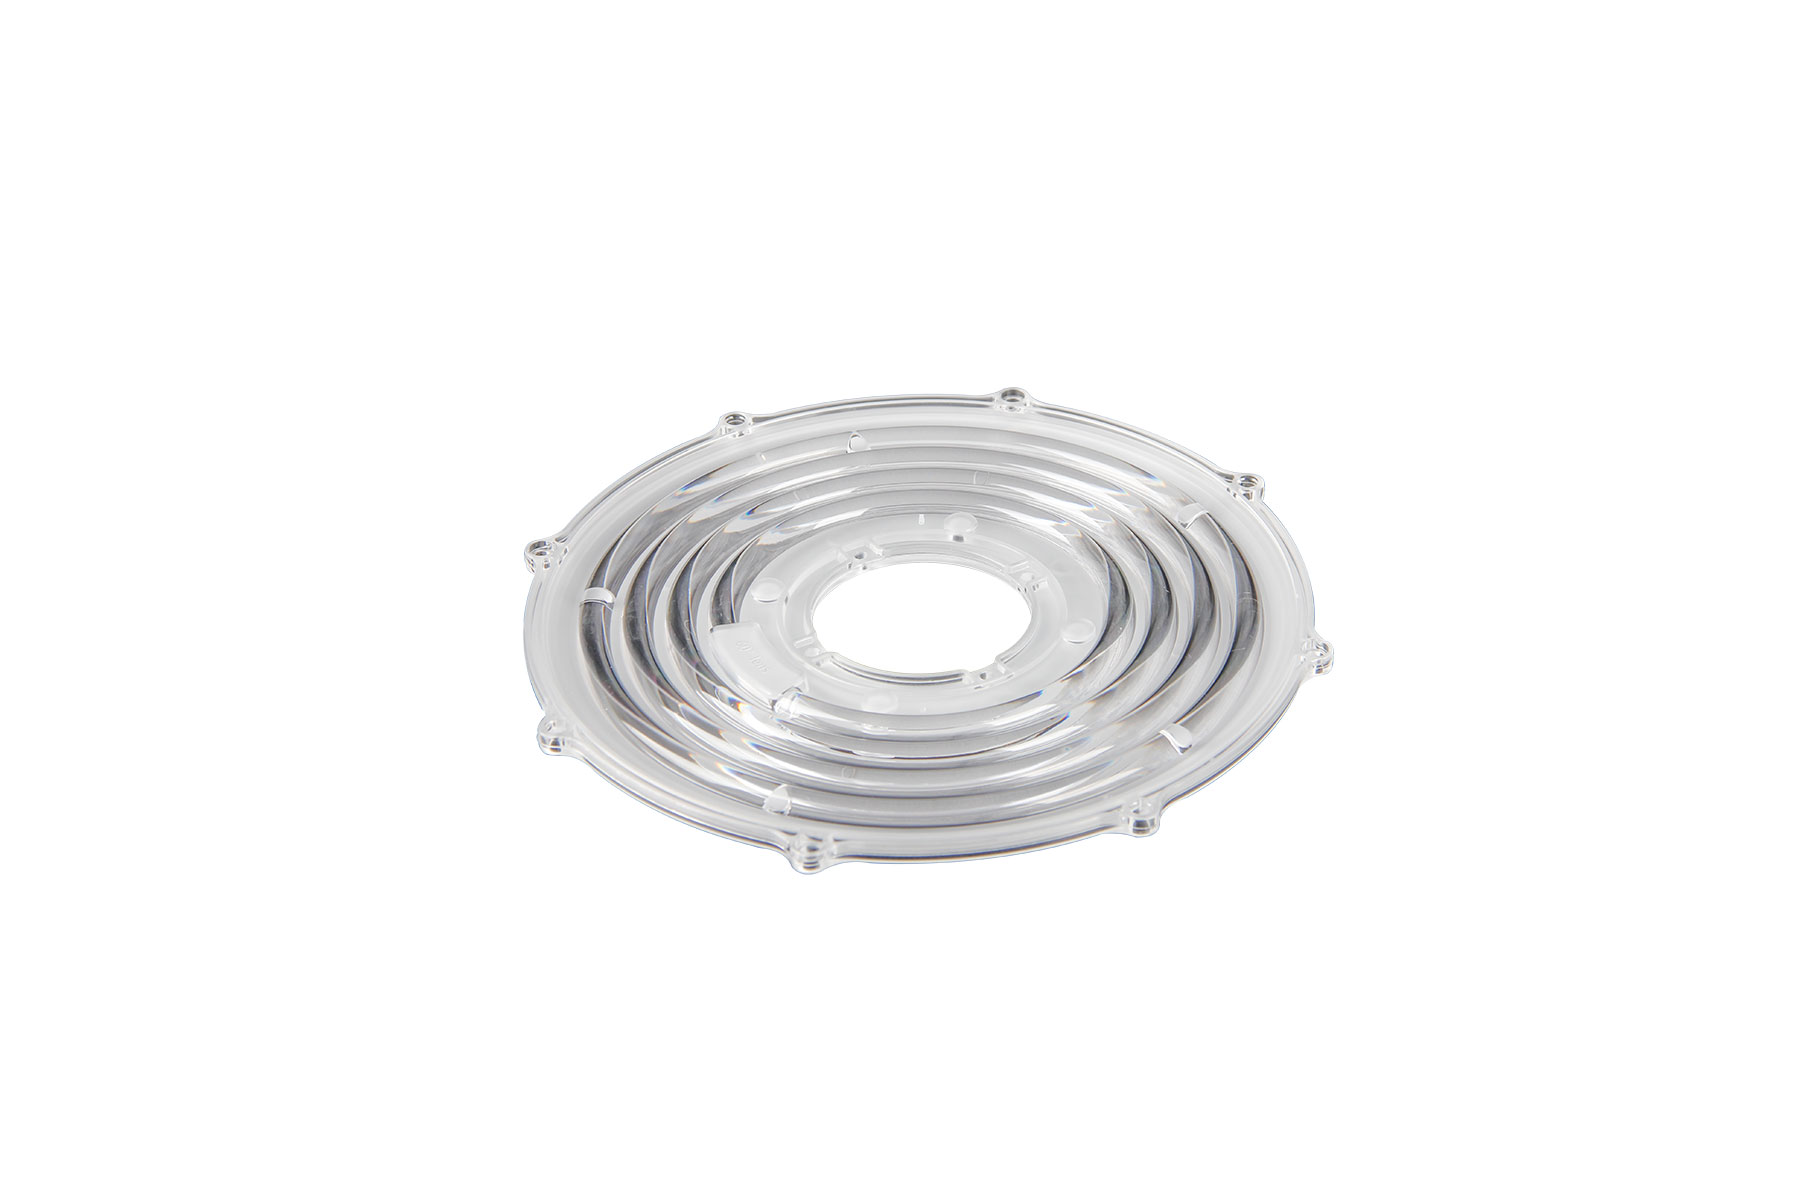 60º Degree Diffuser for HBRA7- Round High Bay LED Light 200W AND 240W